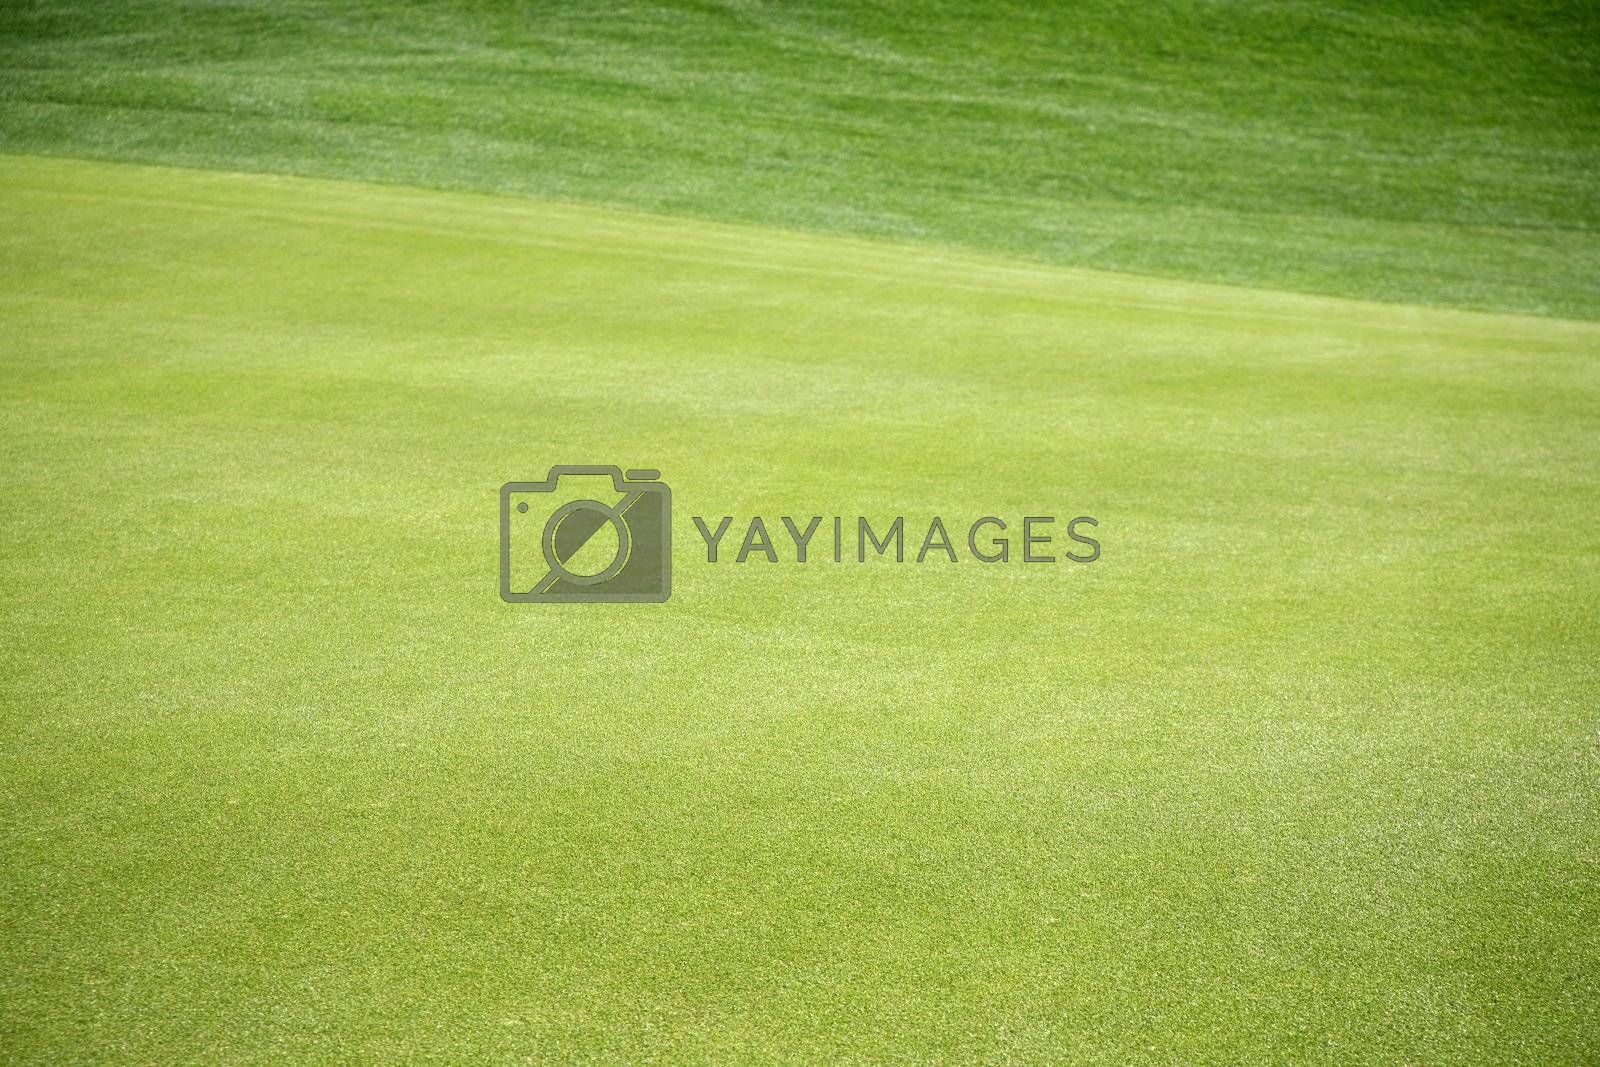 Royalty free image of Grass 4 by scrappinstacy